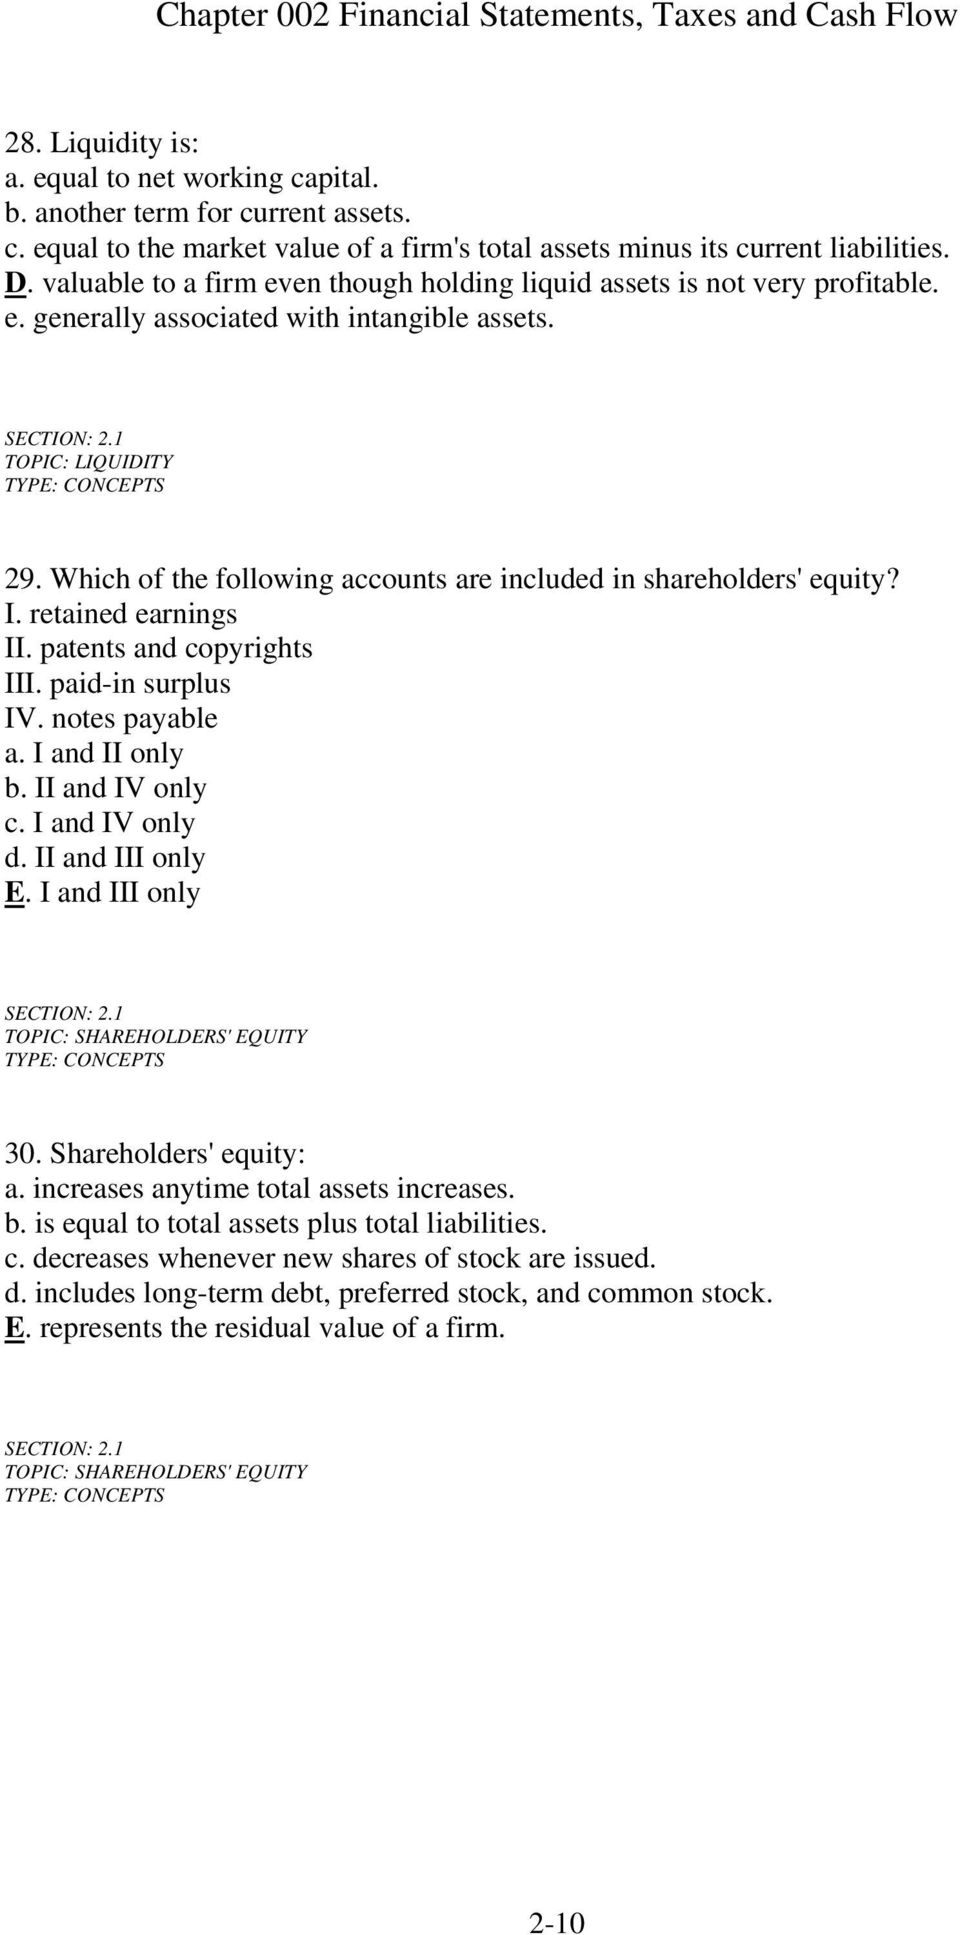 Which of the following accounts are included in shareholders' equity? I. retained earnings II. patents and copyrights III. paid-in surplus IV. notes payable a. I and II only b. II and IV only c.